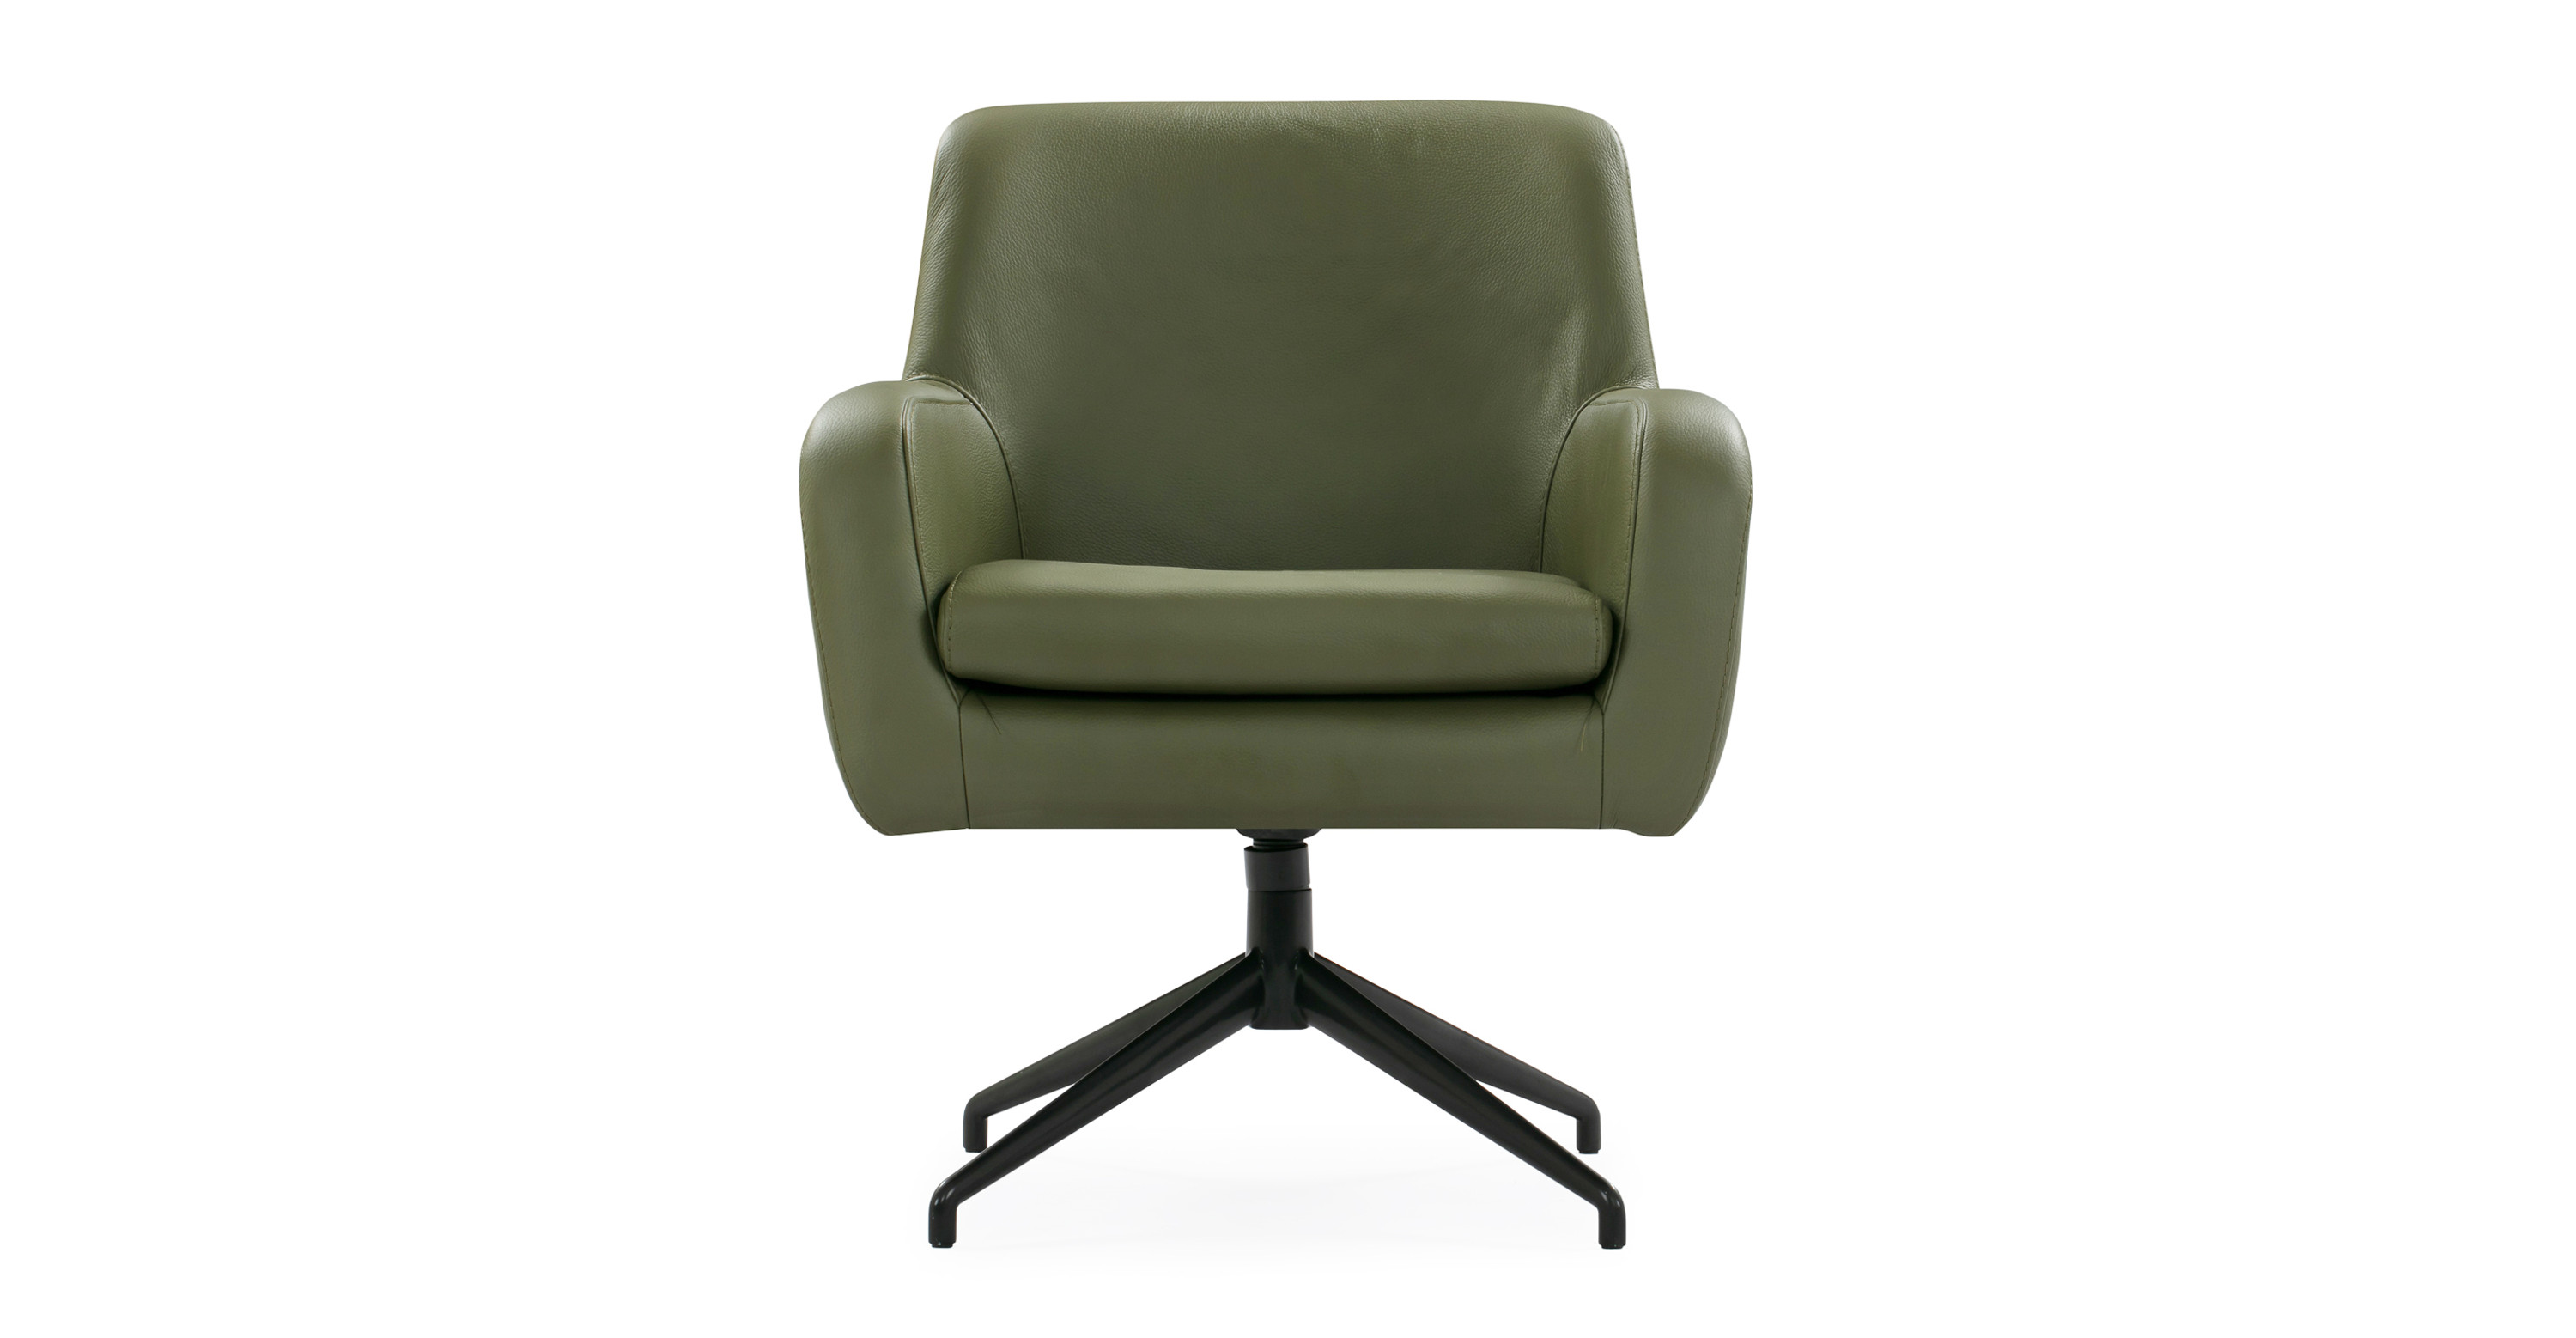 Awe Inspiring Cameron 25 Leather Chair Olive Top Grain Aniline Cjindustries Chair Design For Home Cjindustriesco